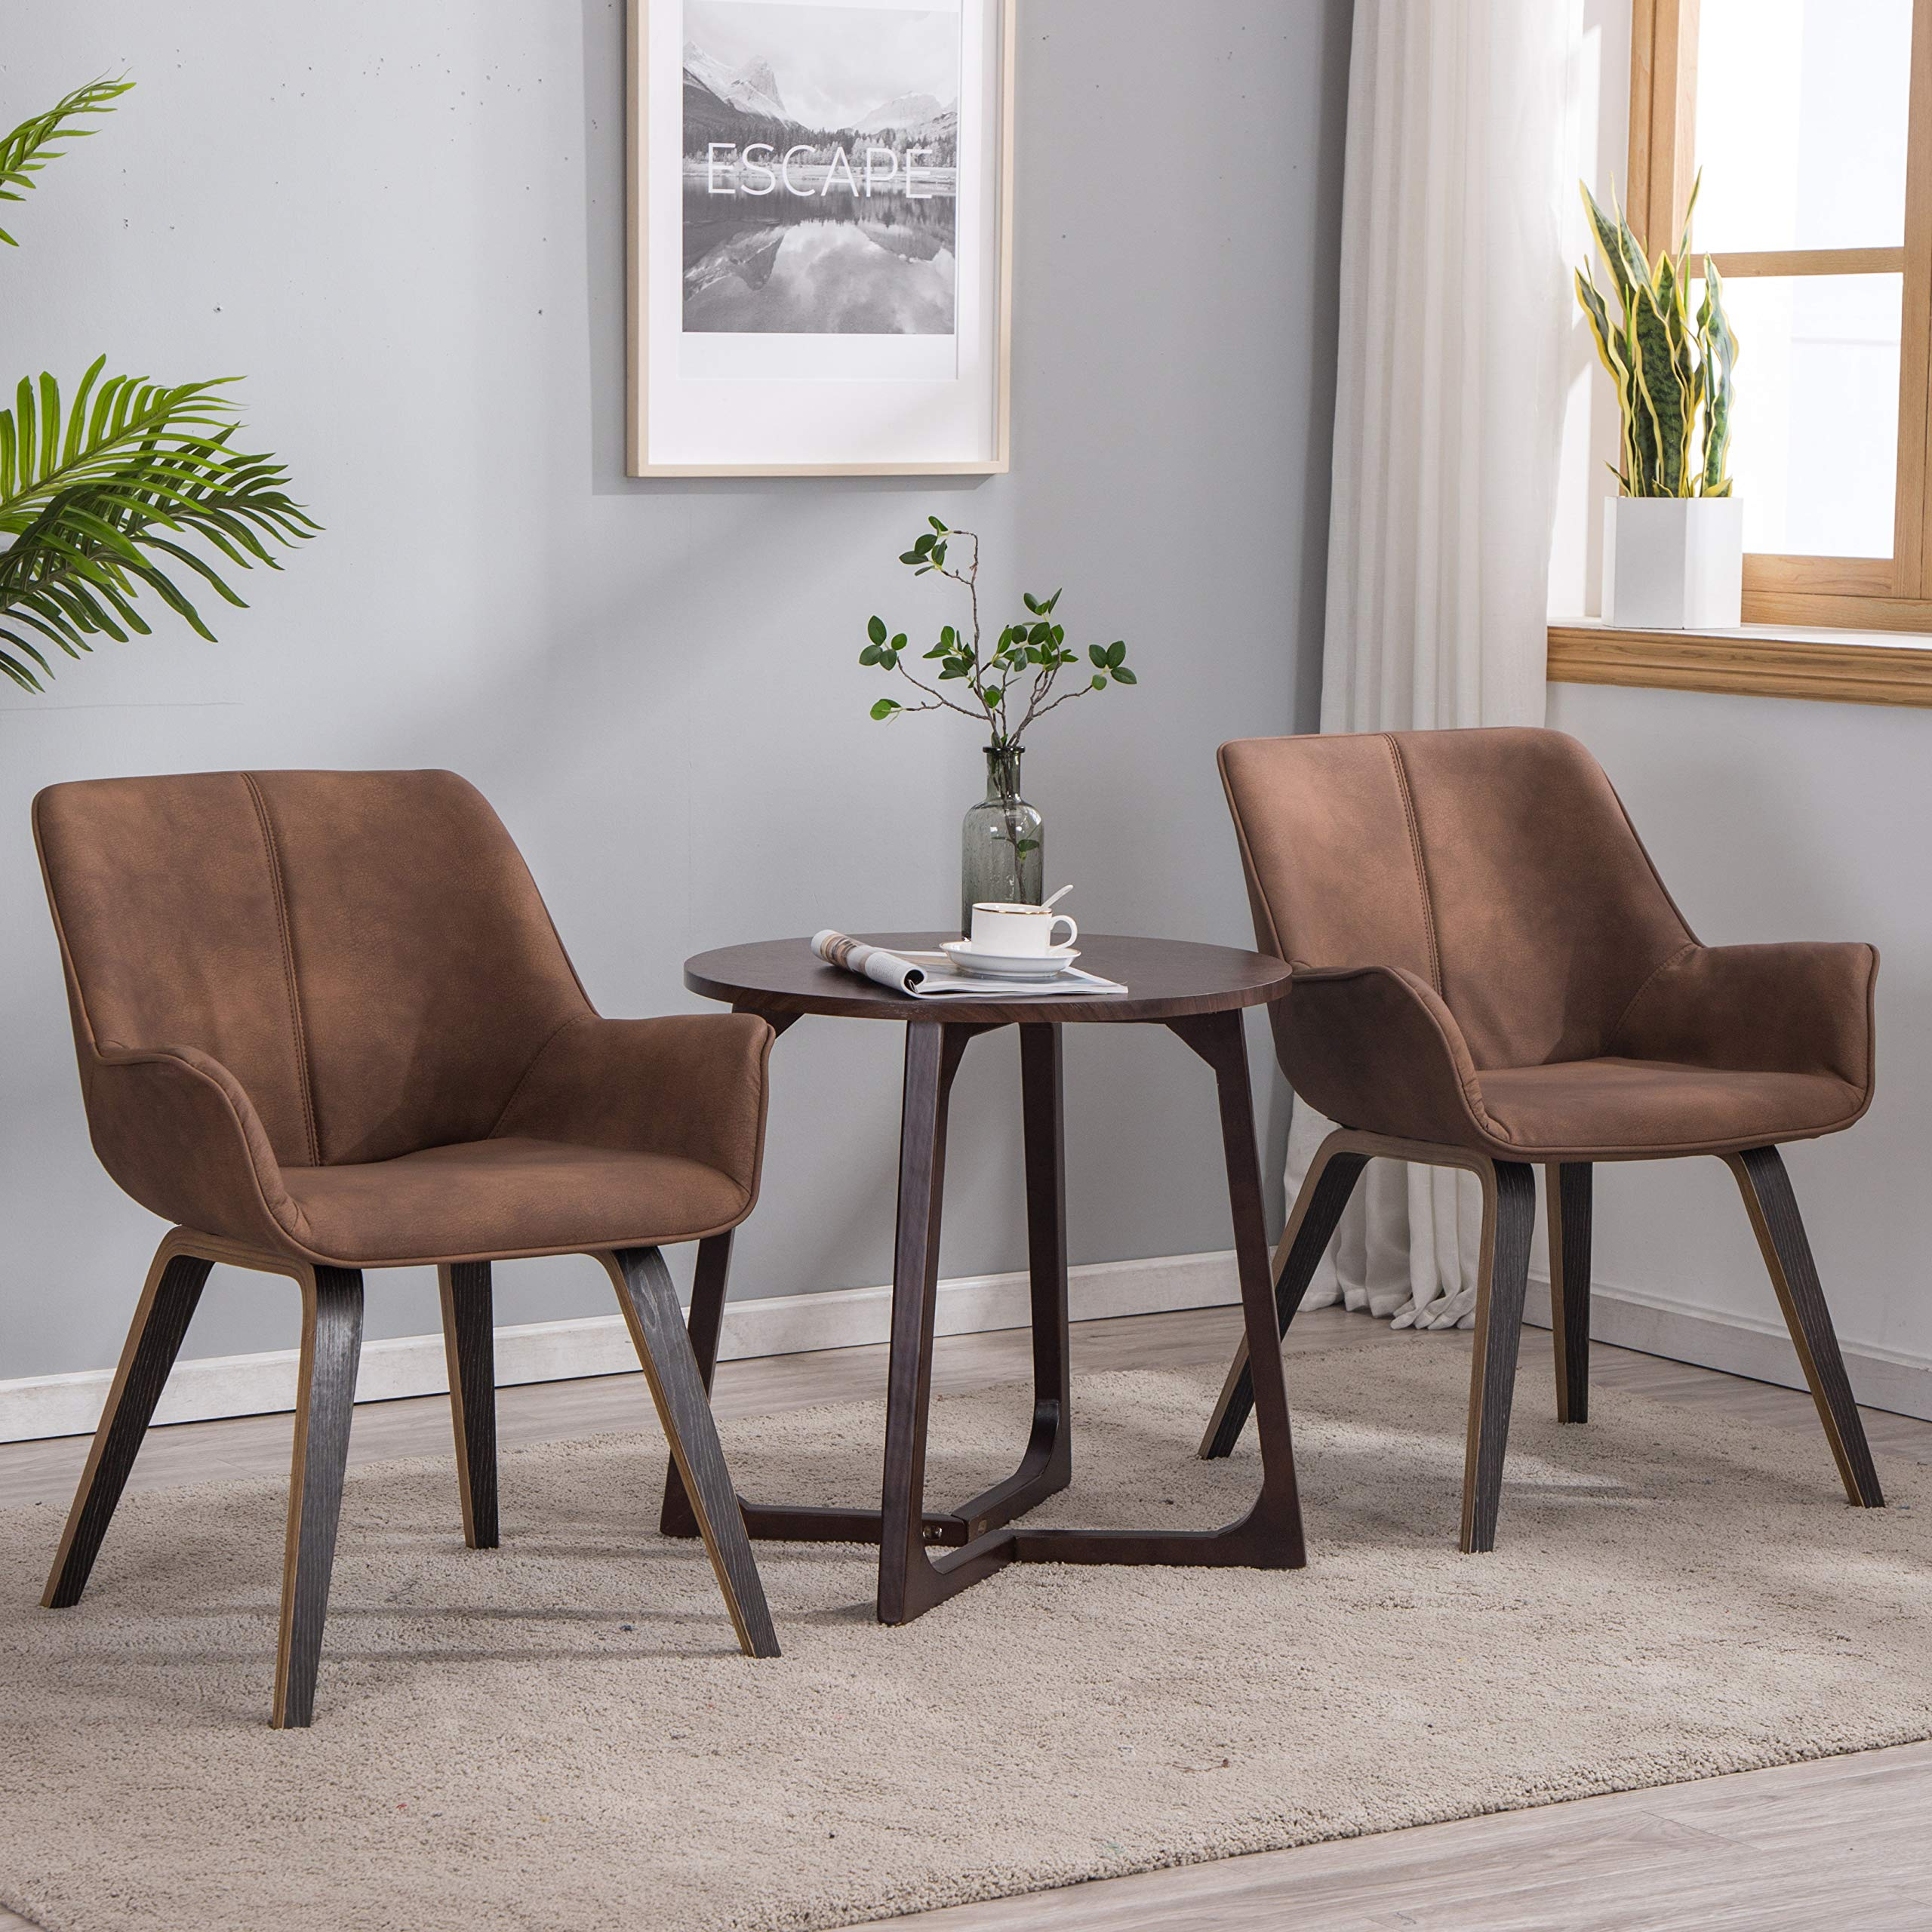 YEEFY Brown Leather Dining Chairs with arms Leather Side Chairs Set of 2 (Brown) by YEEFY (Image #1)